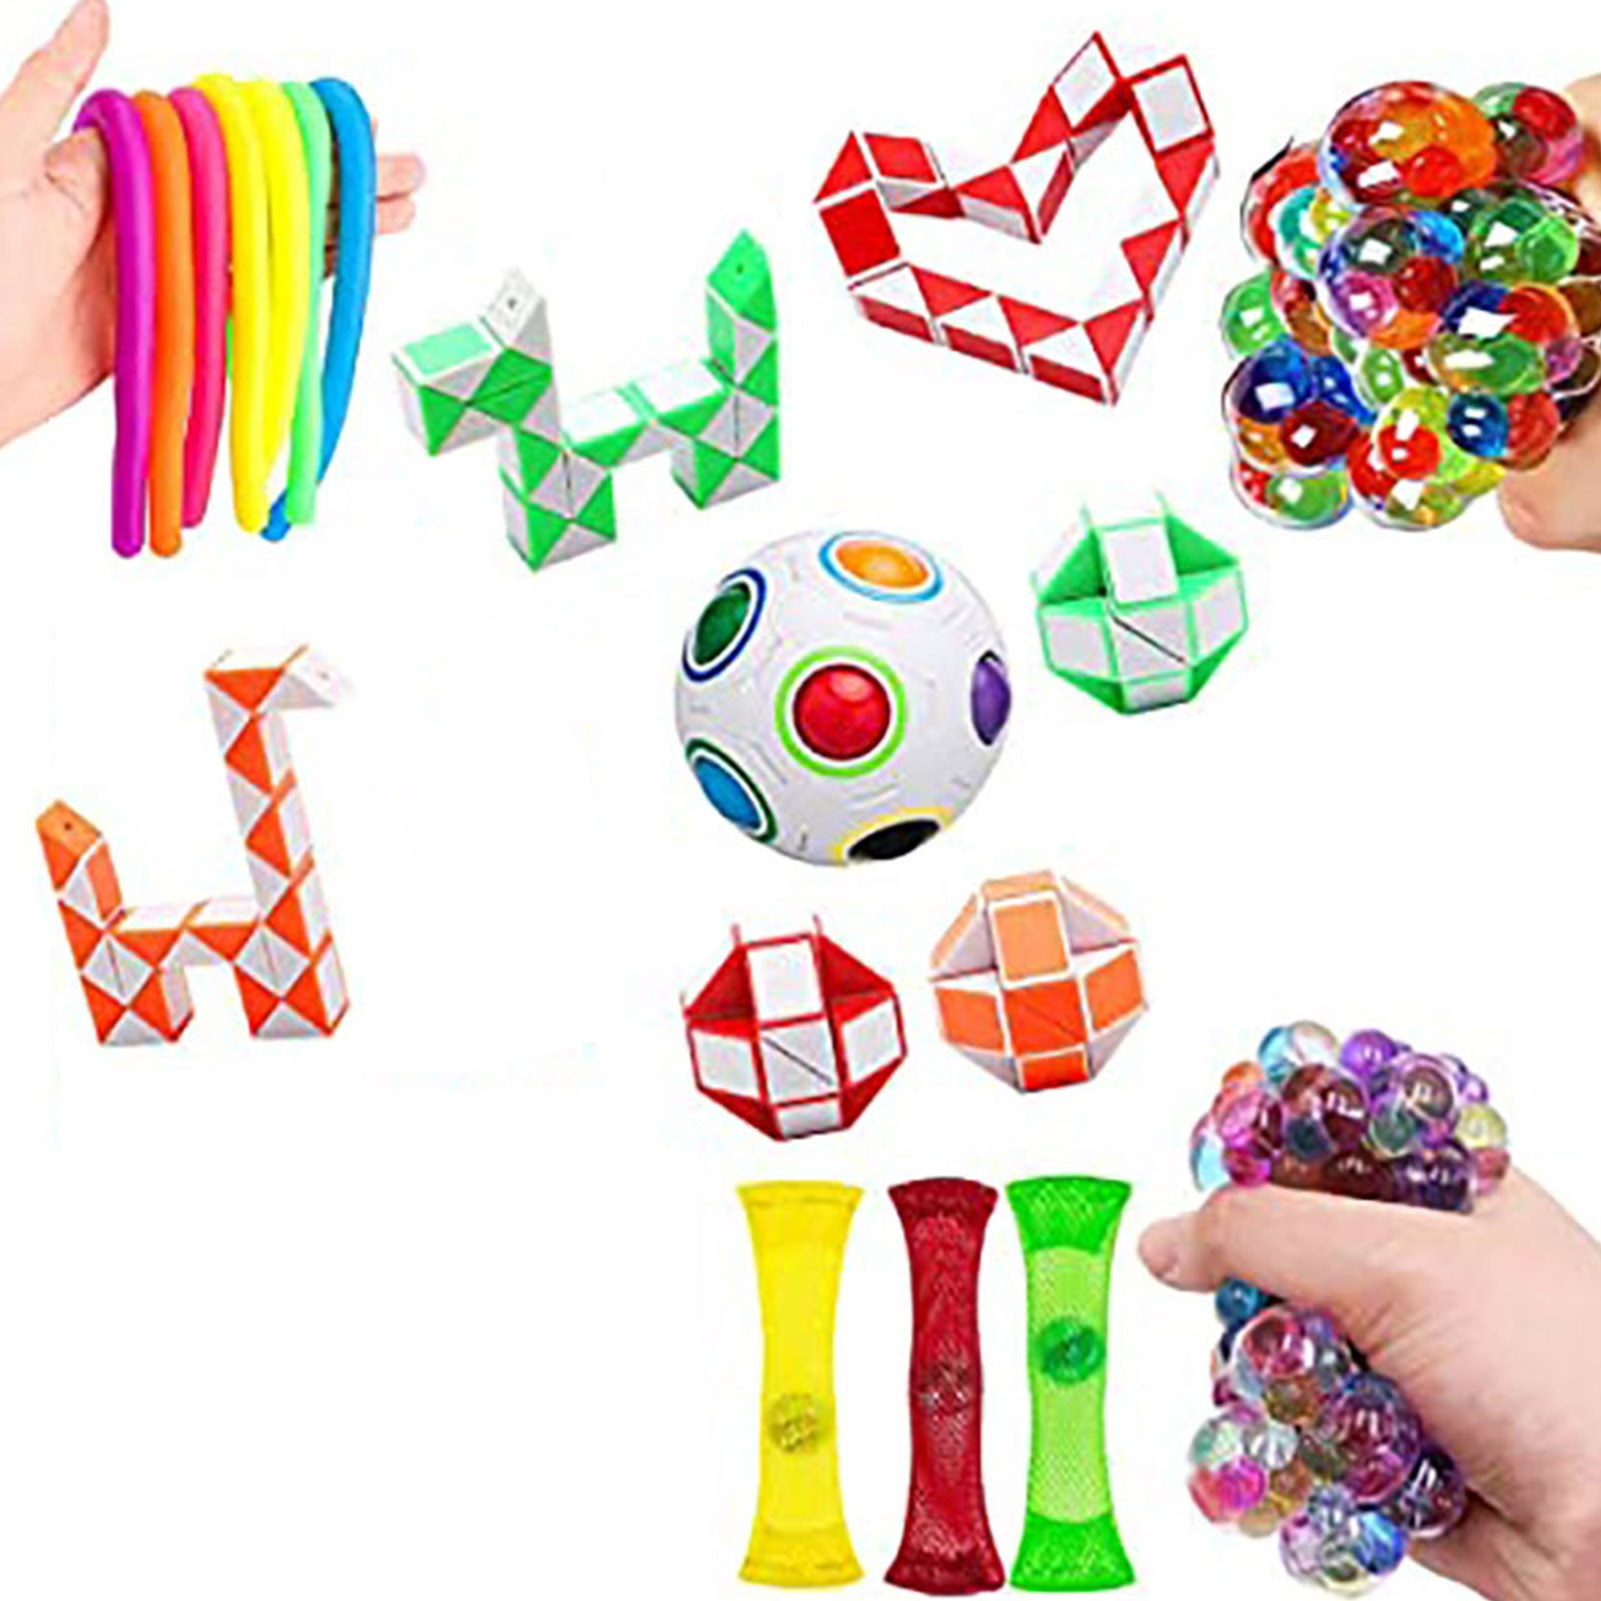 Fidget Toys Anti Stress Toy Set Stretchy Strings Mesh Marble Relief Gift For Adults Kids Sensory Stress Relief Decompression Toy enlarge